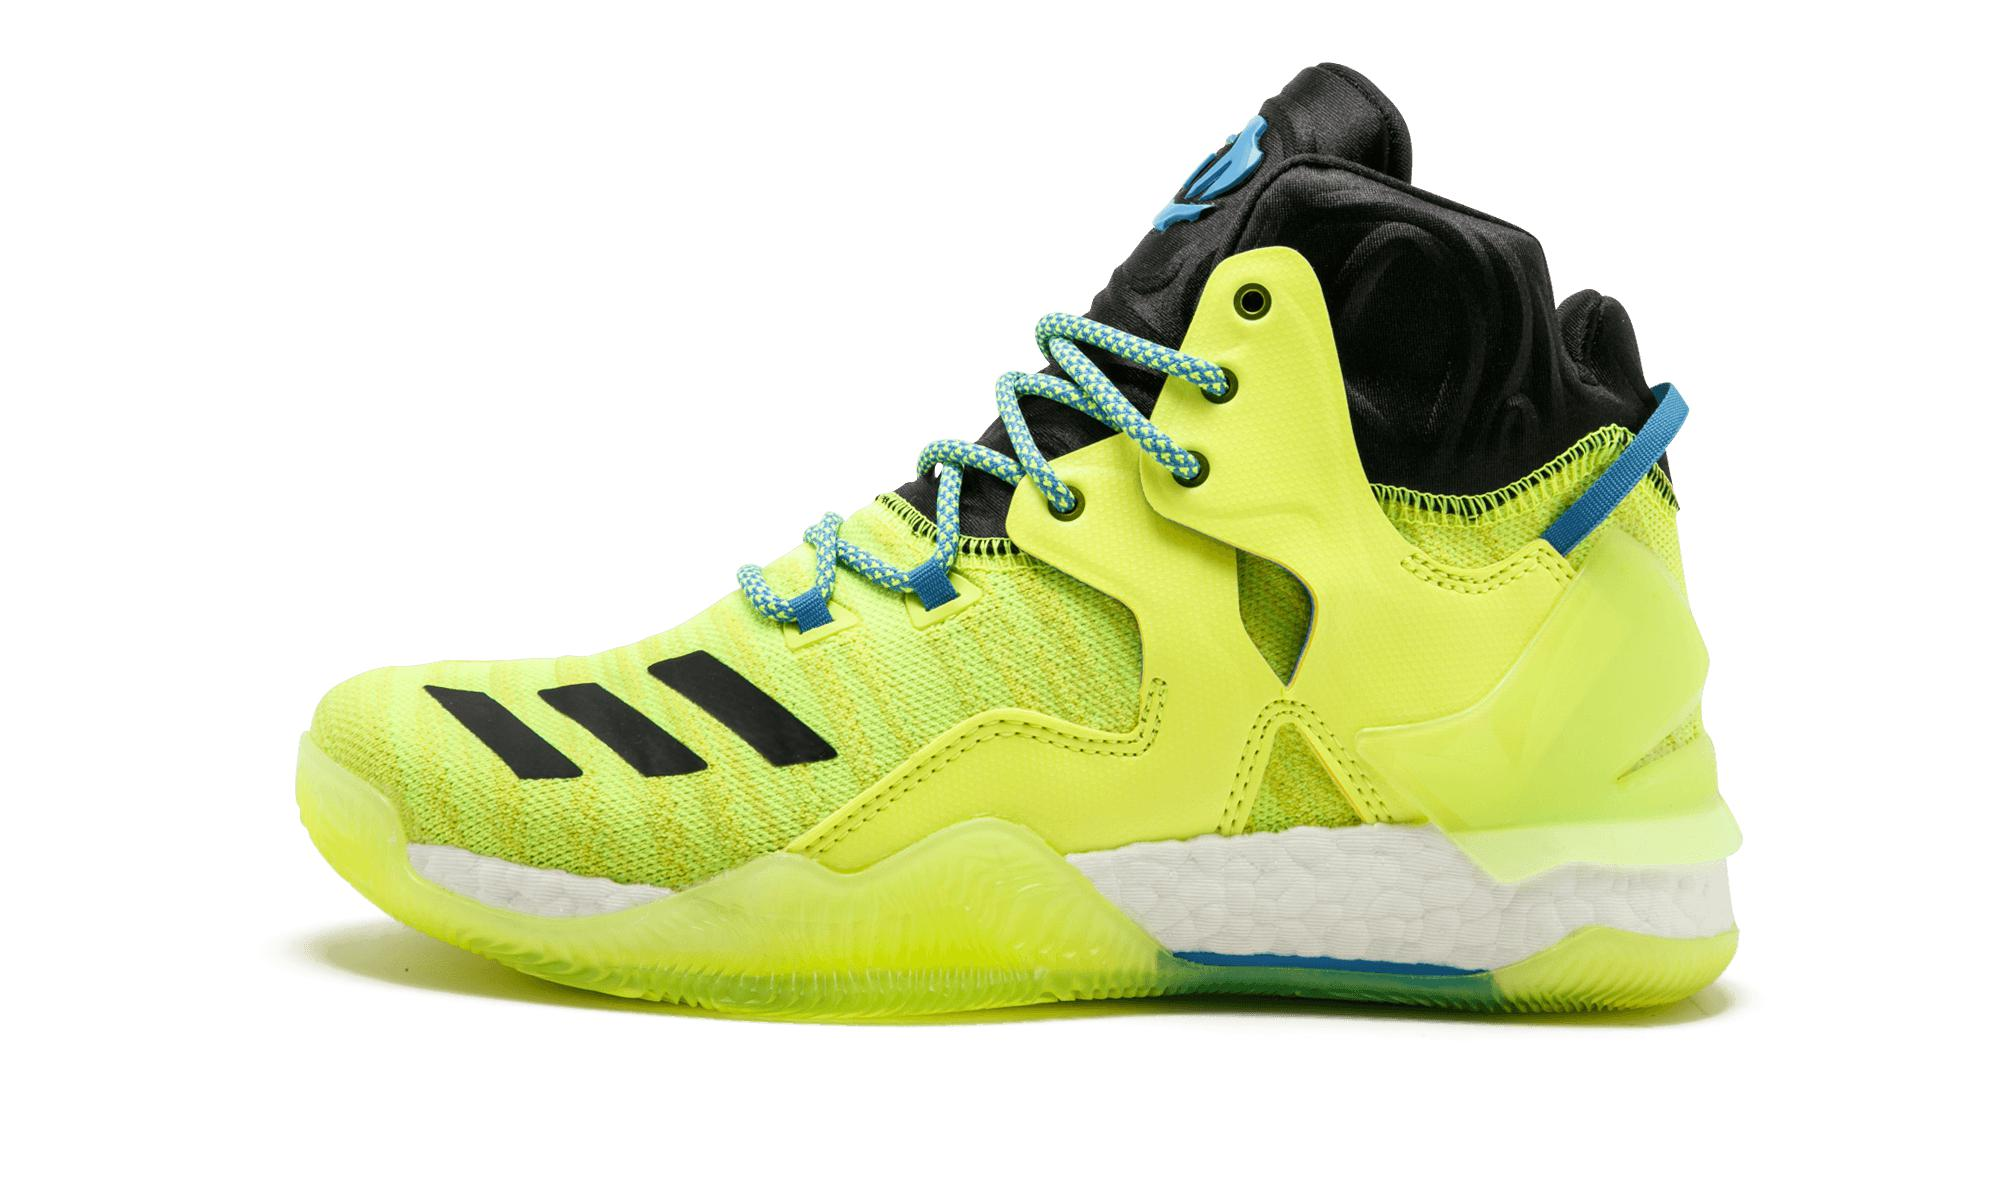 cheap for discount 7379c bfc63 Lyst - adidas D Rose 7 Primeknit in Yellow for Men